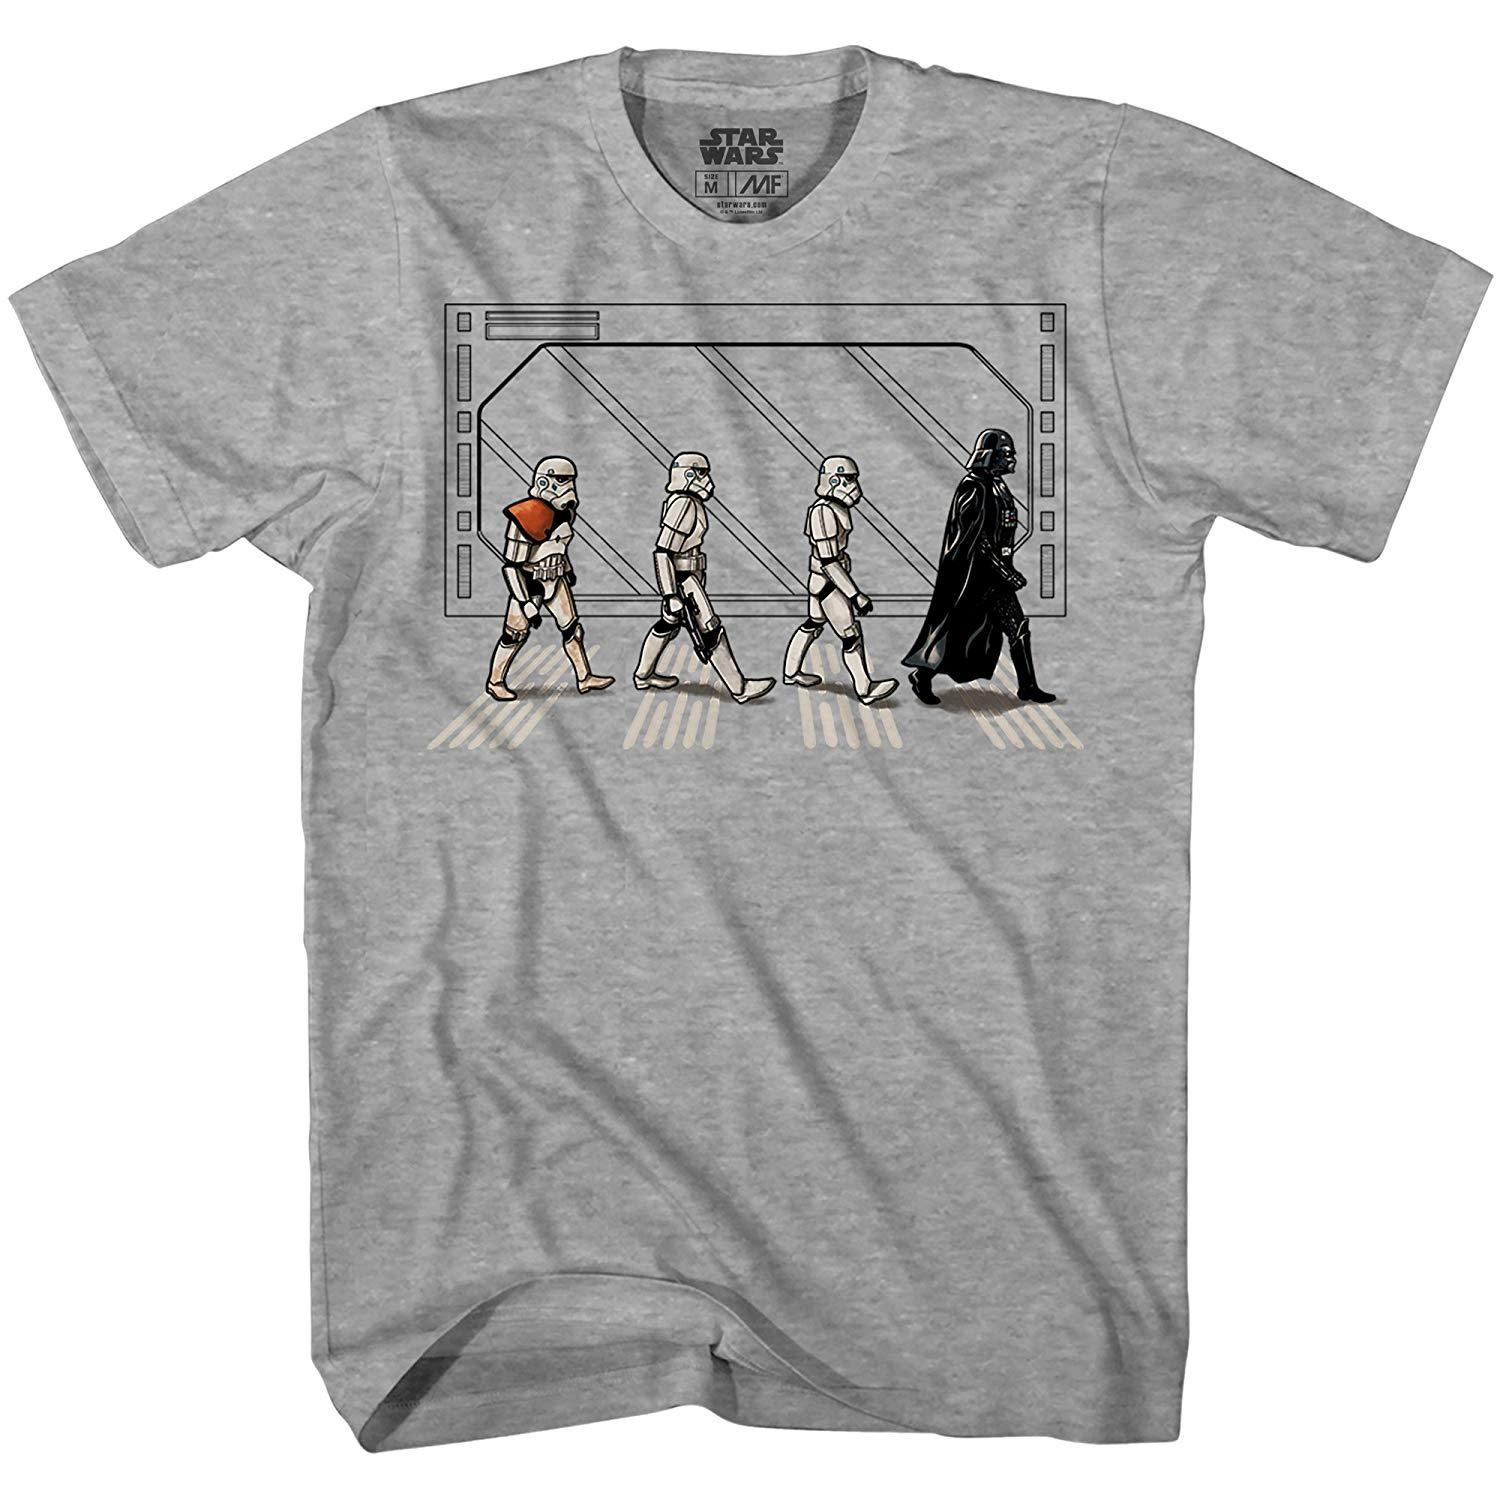 929041f976 Death Star Road Stormtrooper Crossing Mens T Shirt Mens 2018 Cheap Wholesale  Tees 100% Cotton For Man T Shirt Printing Latest Designer T Shirts Coolest  Tees ...